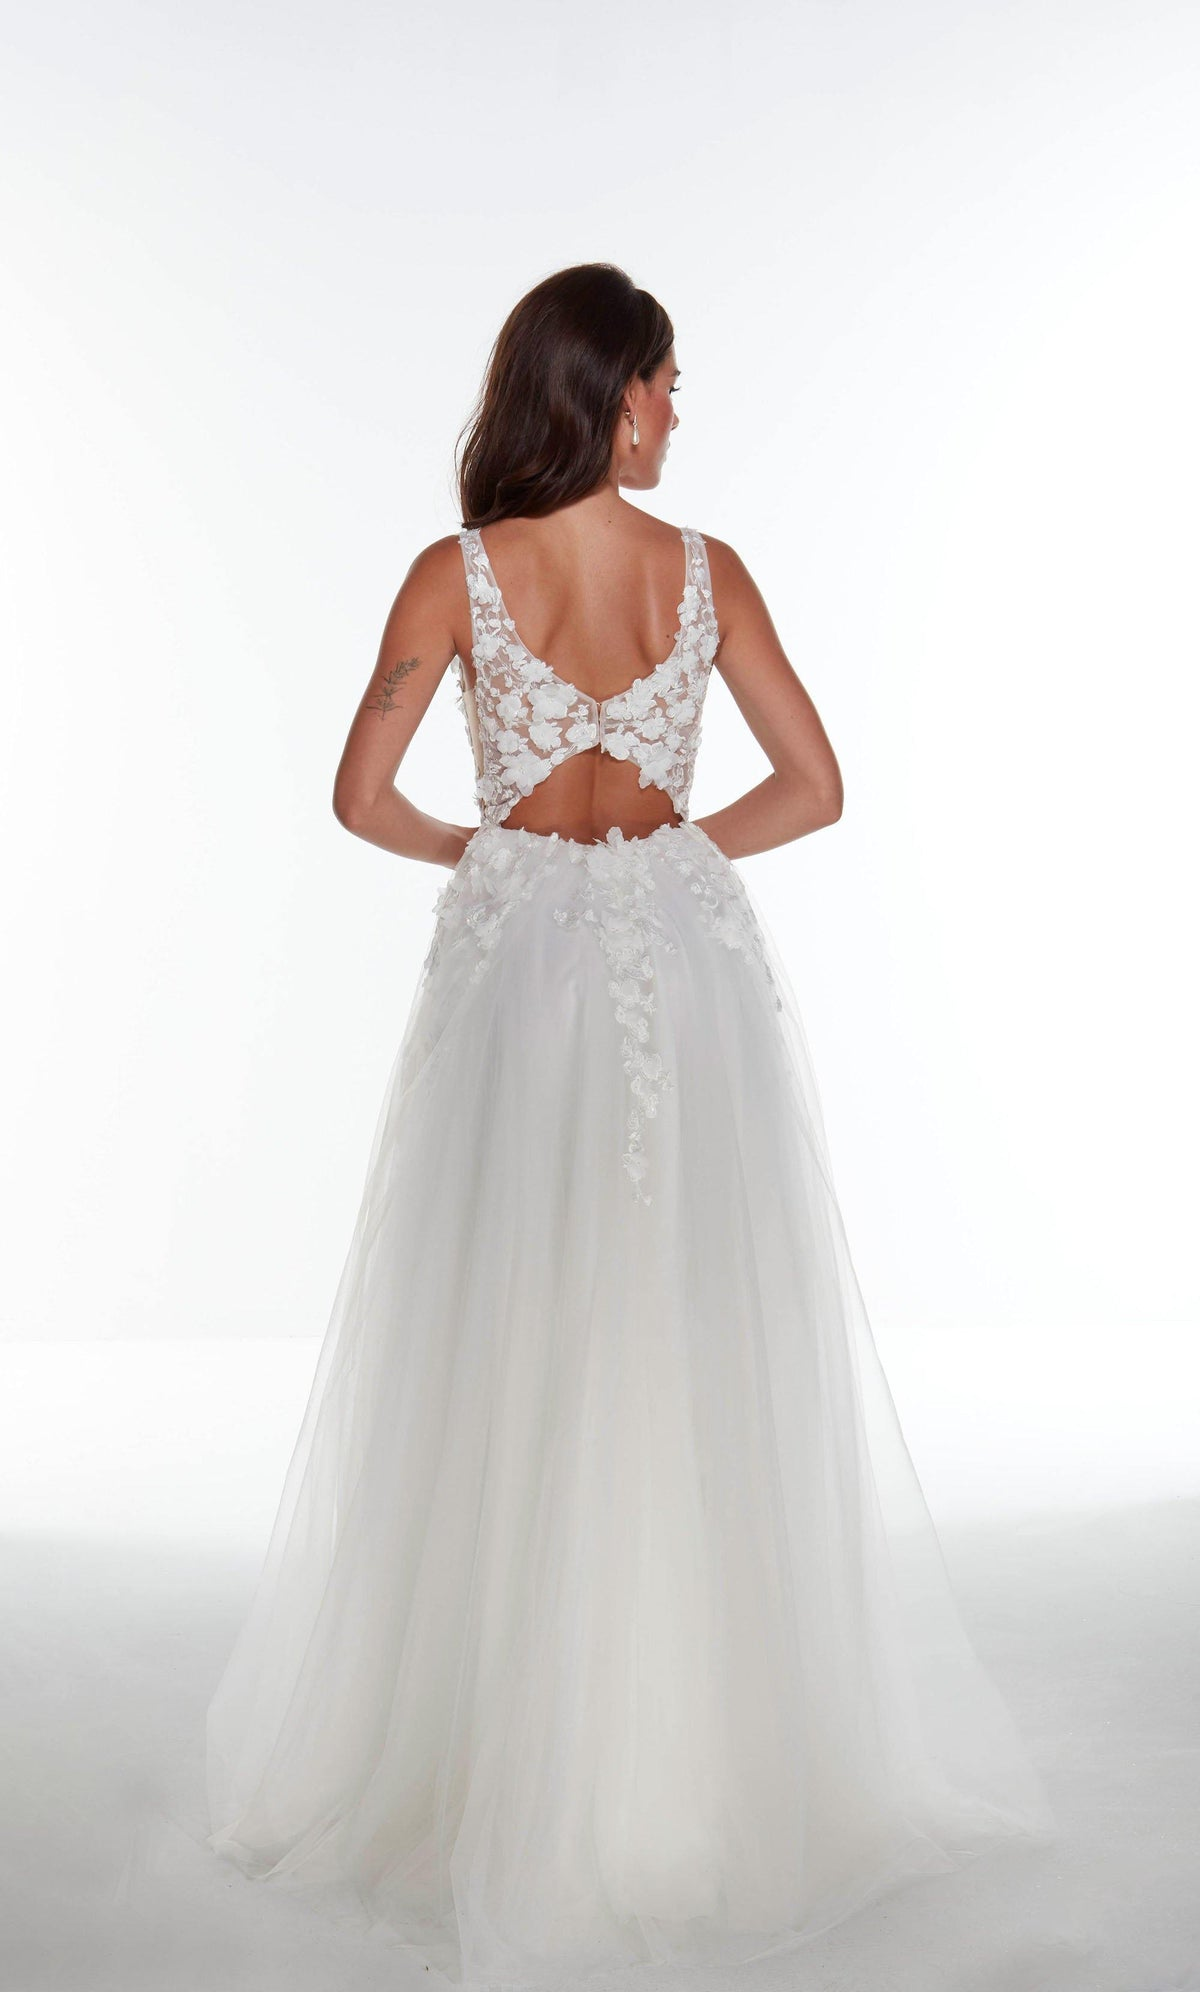 Diamond White wedding dress with a keyhole back style, 3D floral embroidery, and train